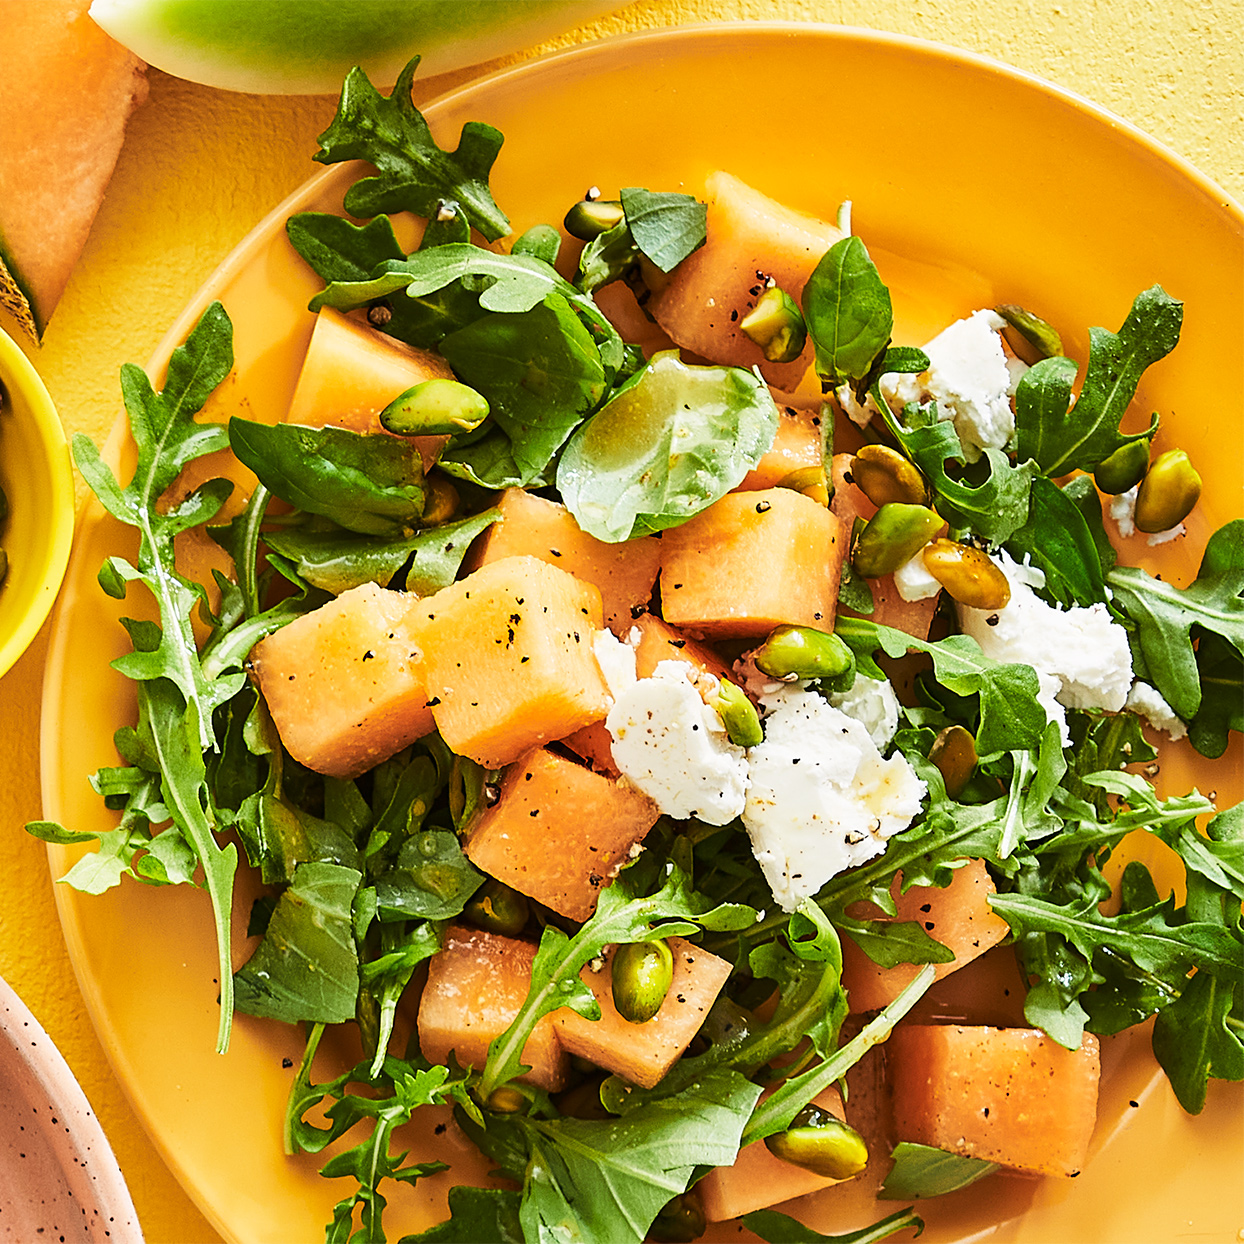 Buy a melon that feels heavy for its size and smells slightly sweet. Picking a ripe one ensures the right balance of flavors in this arugula and goat cheese salad.